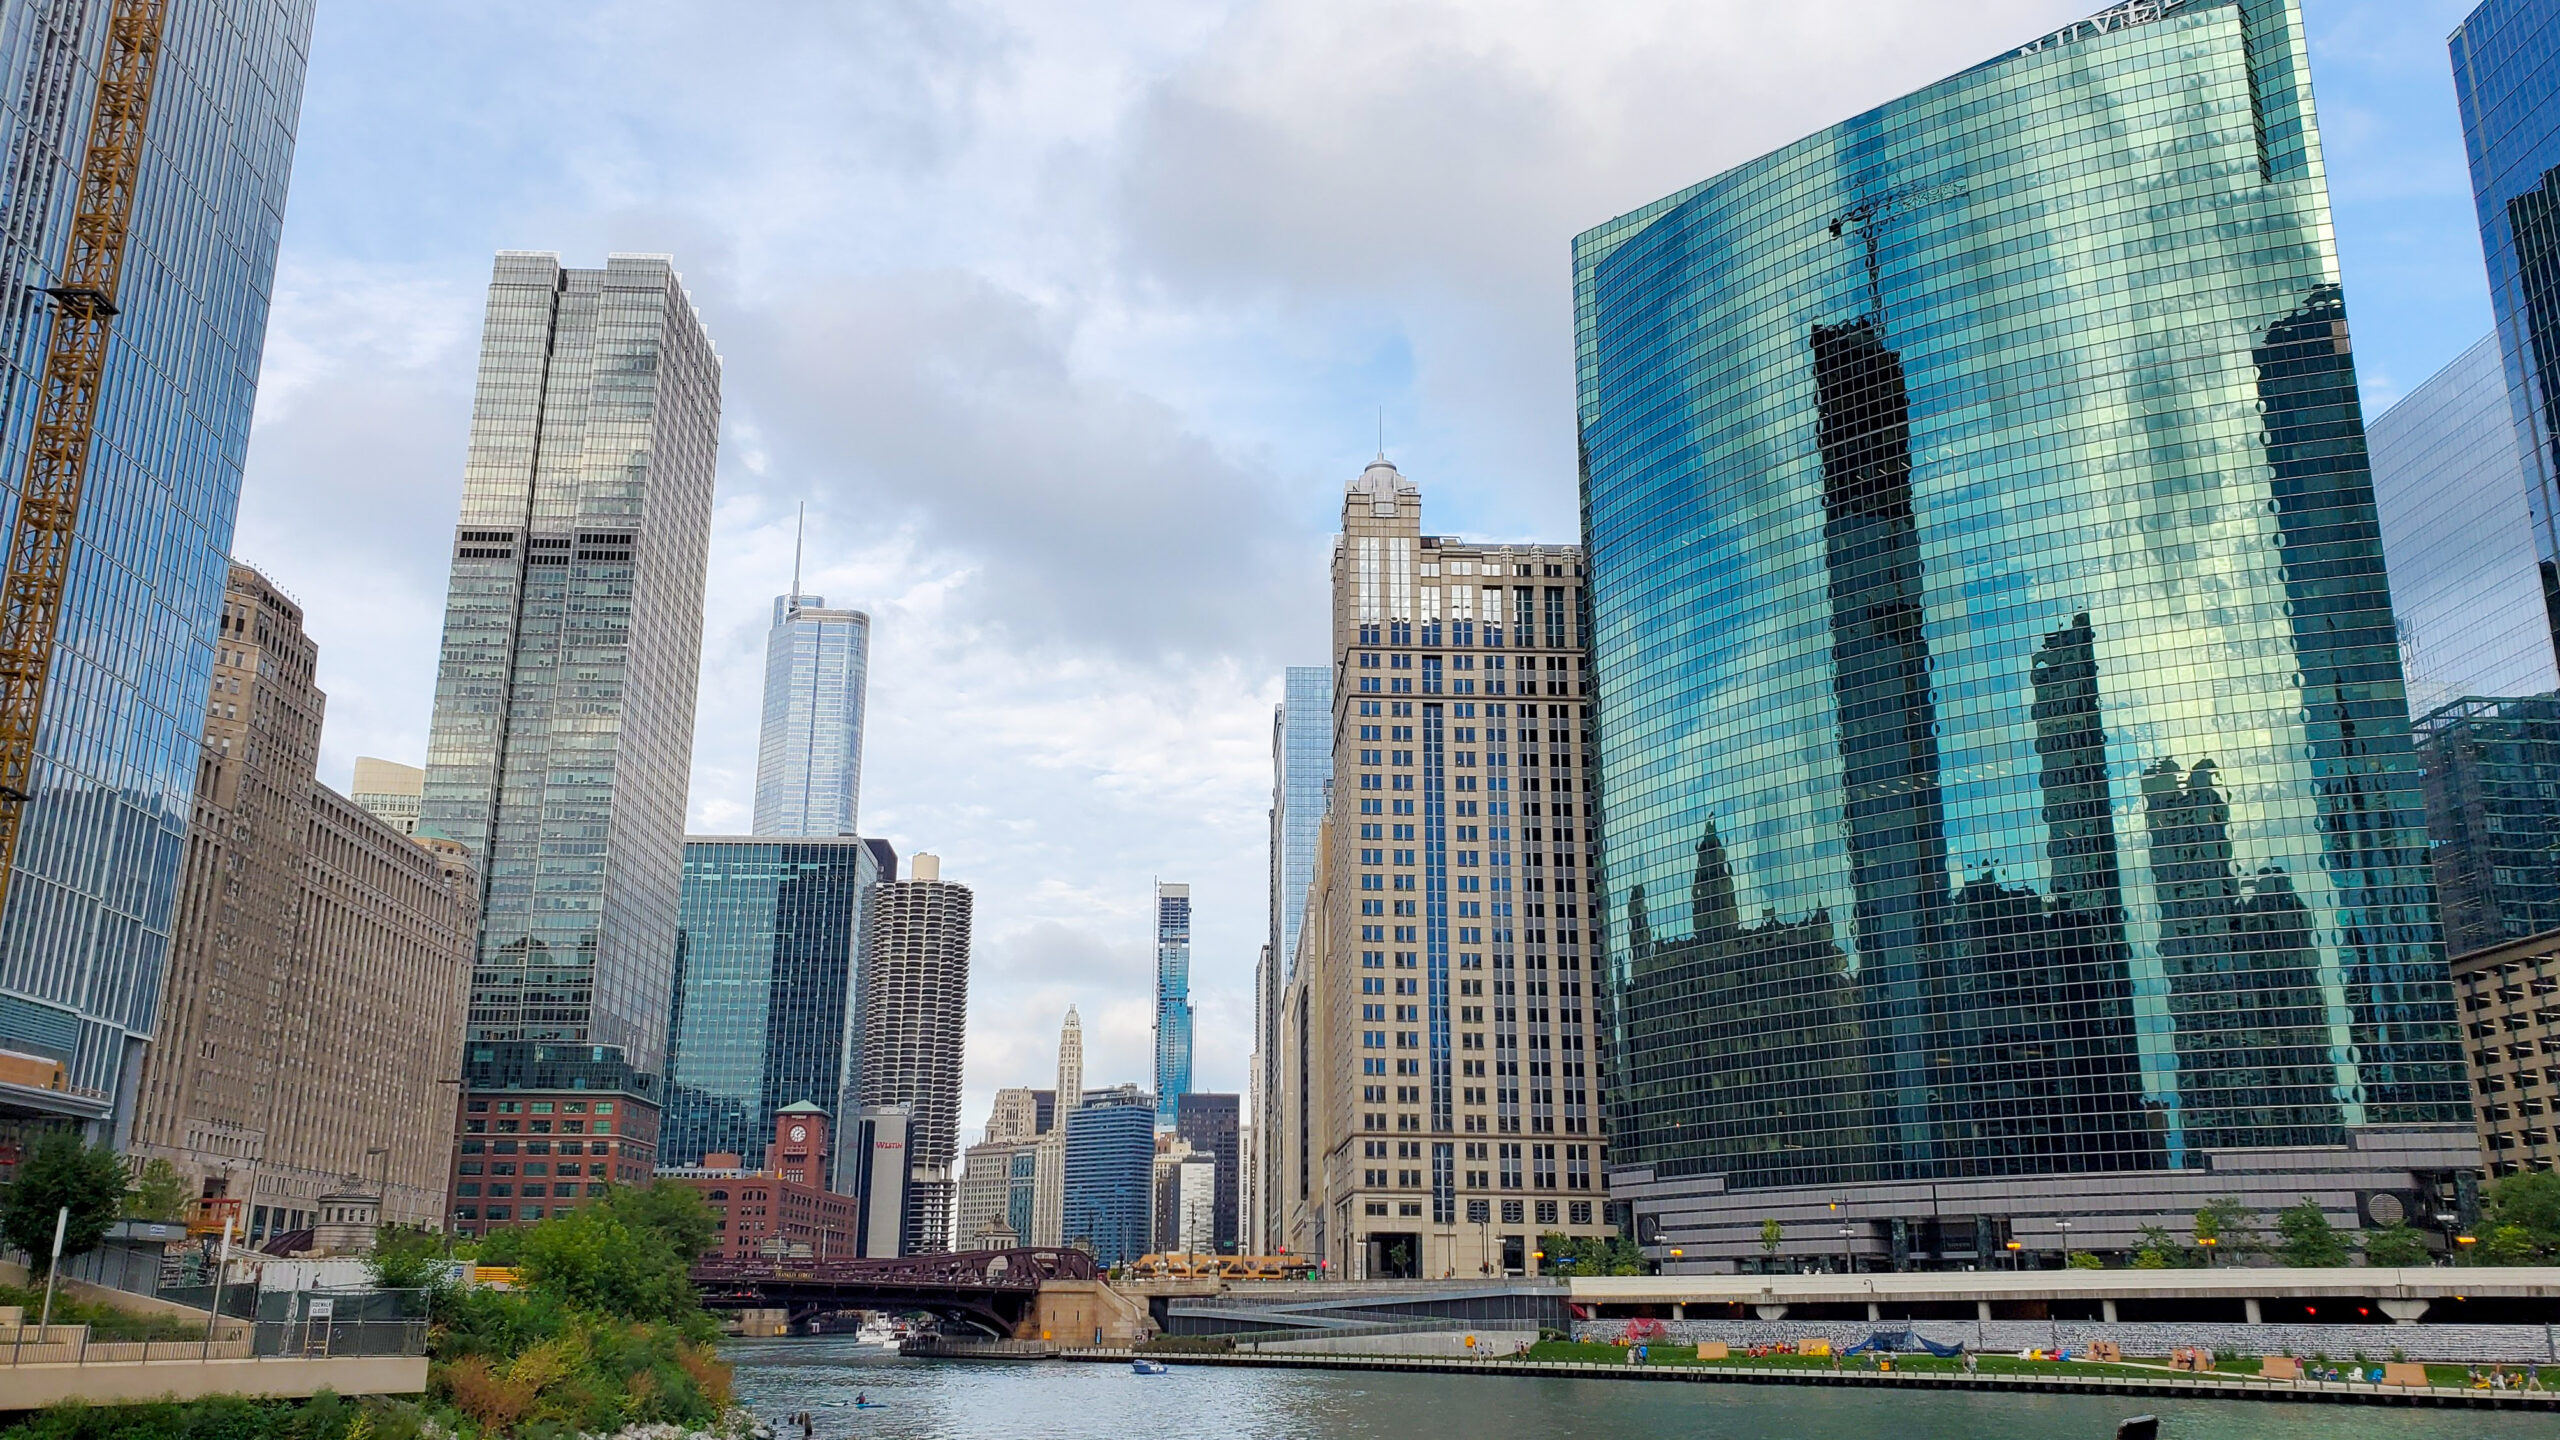 Architecture Center Boat Tour: One of the Best Things to Do in Chicago